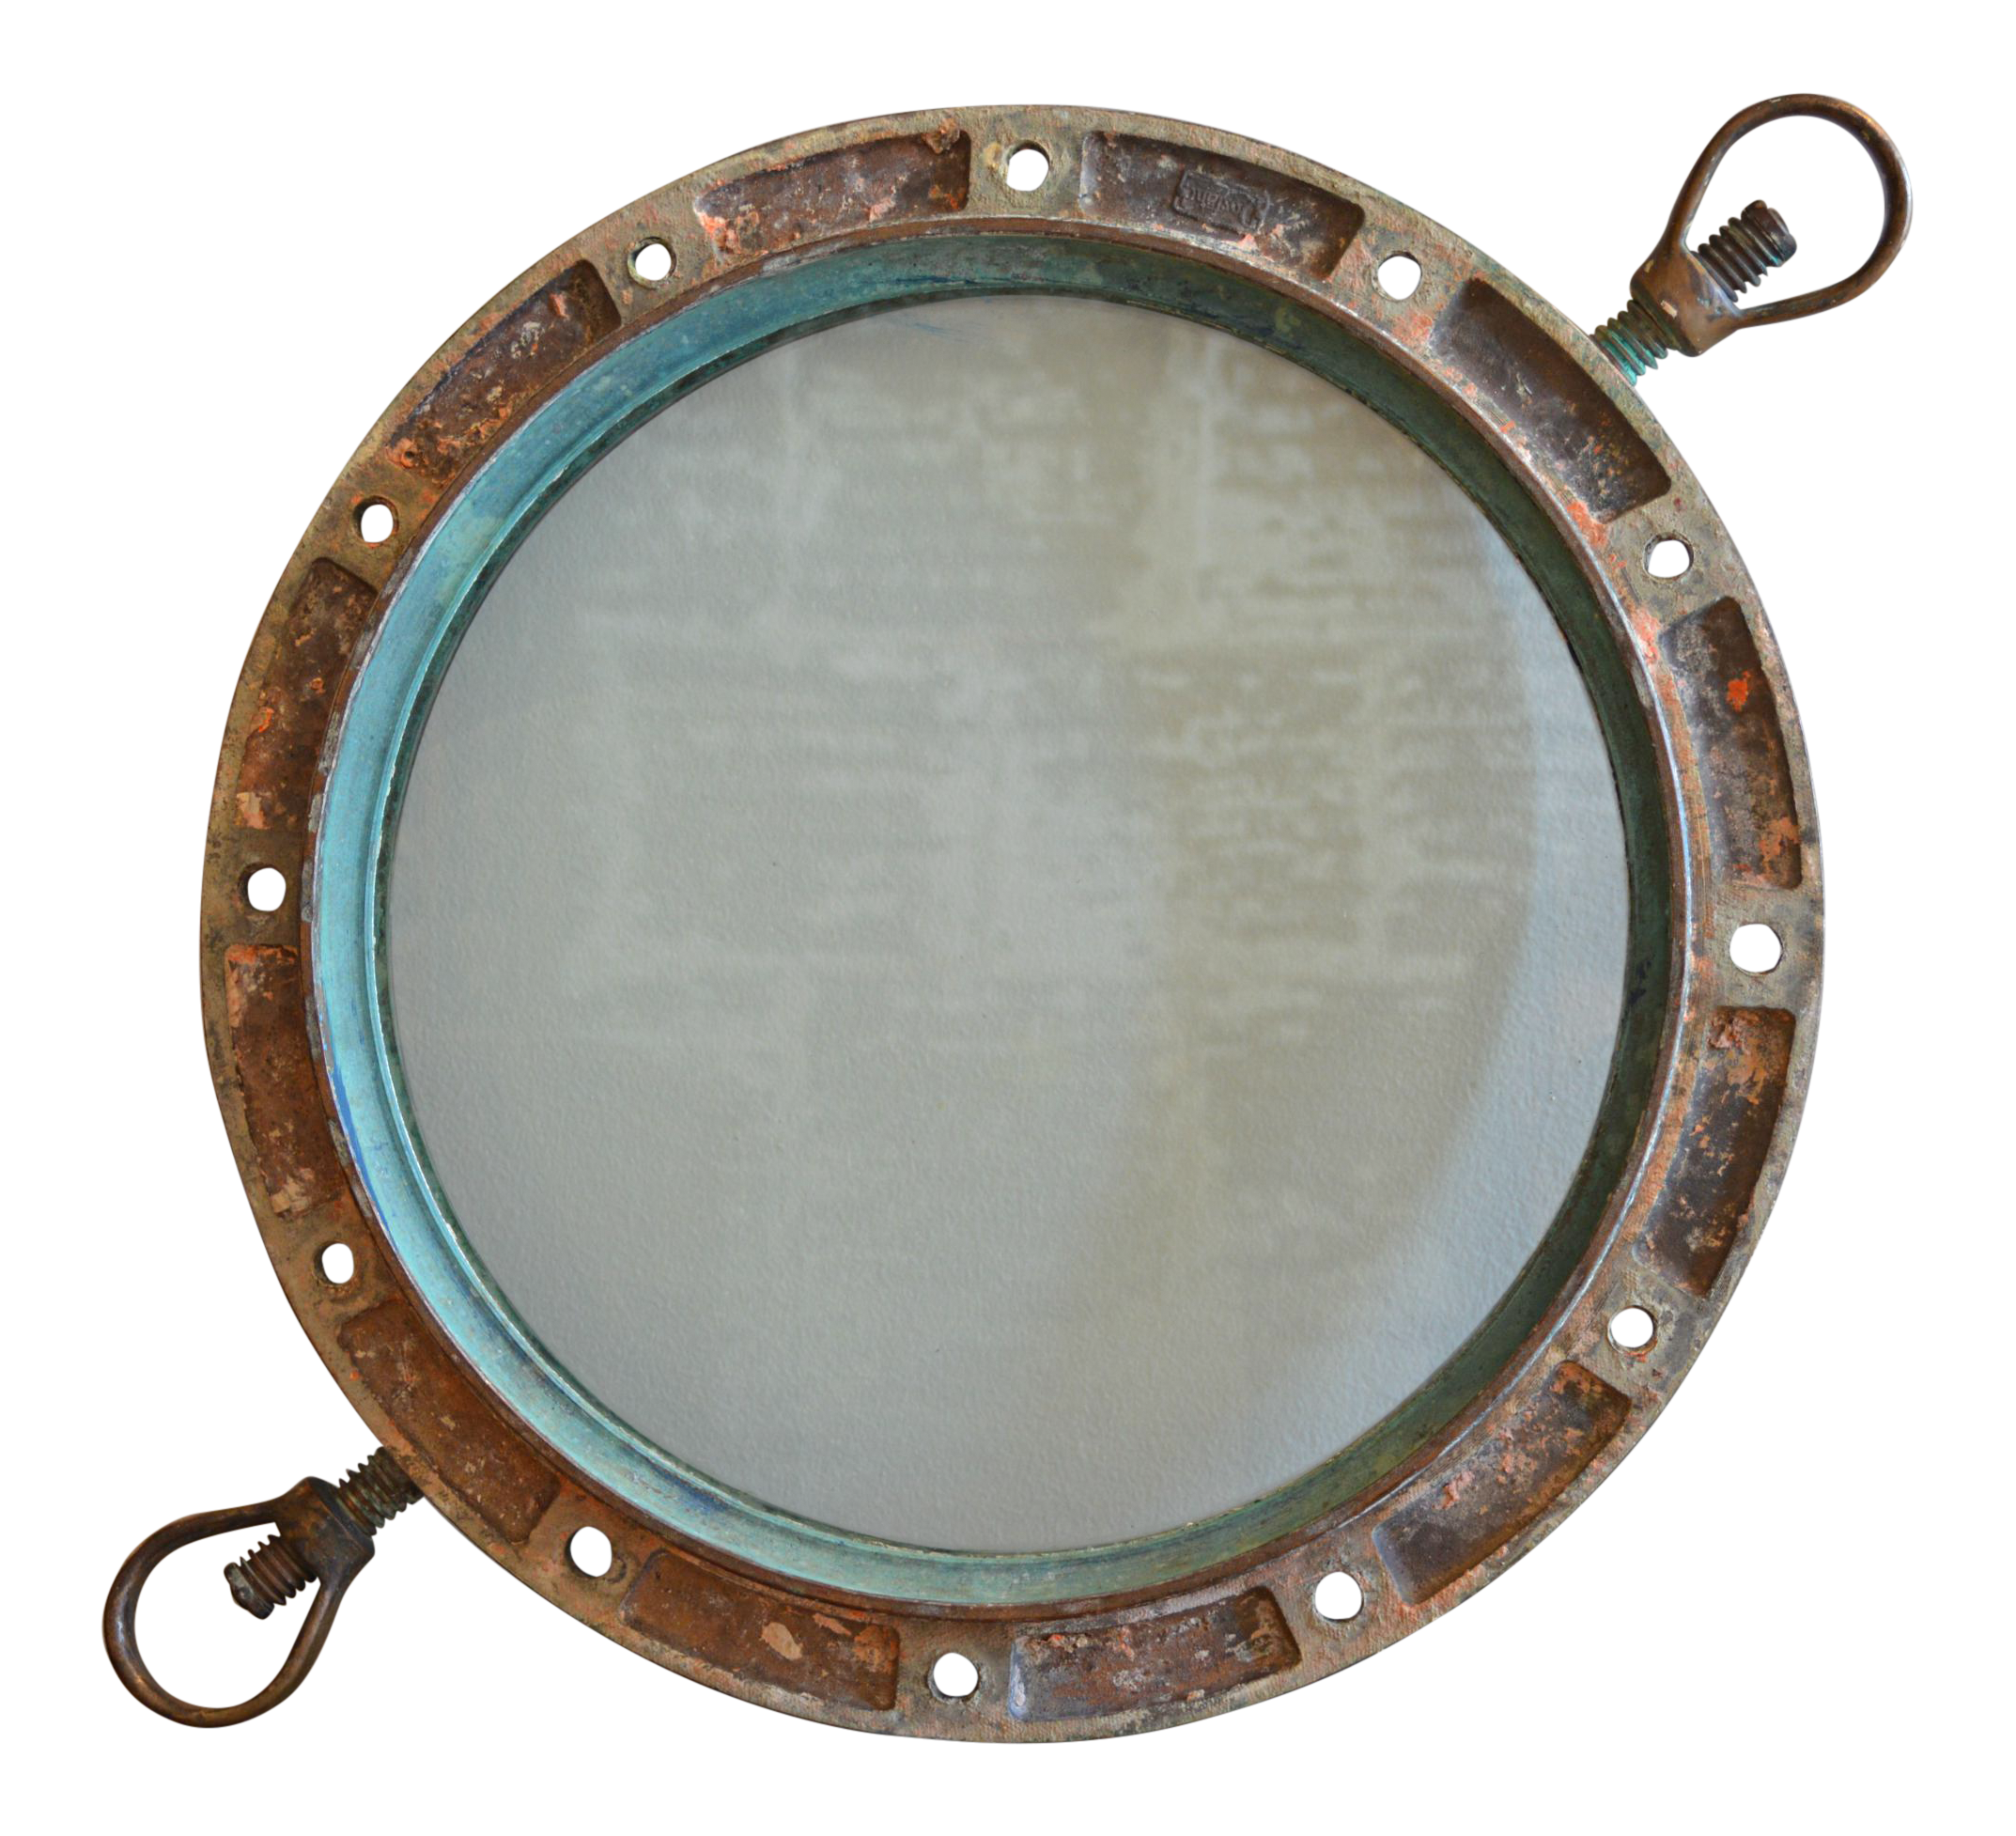 Port hole png. Early rostand brass porthole